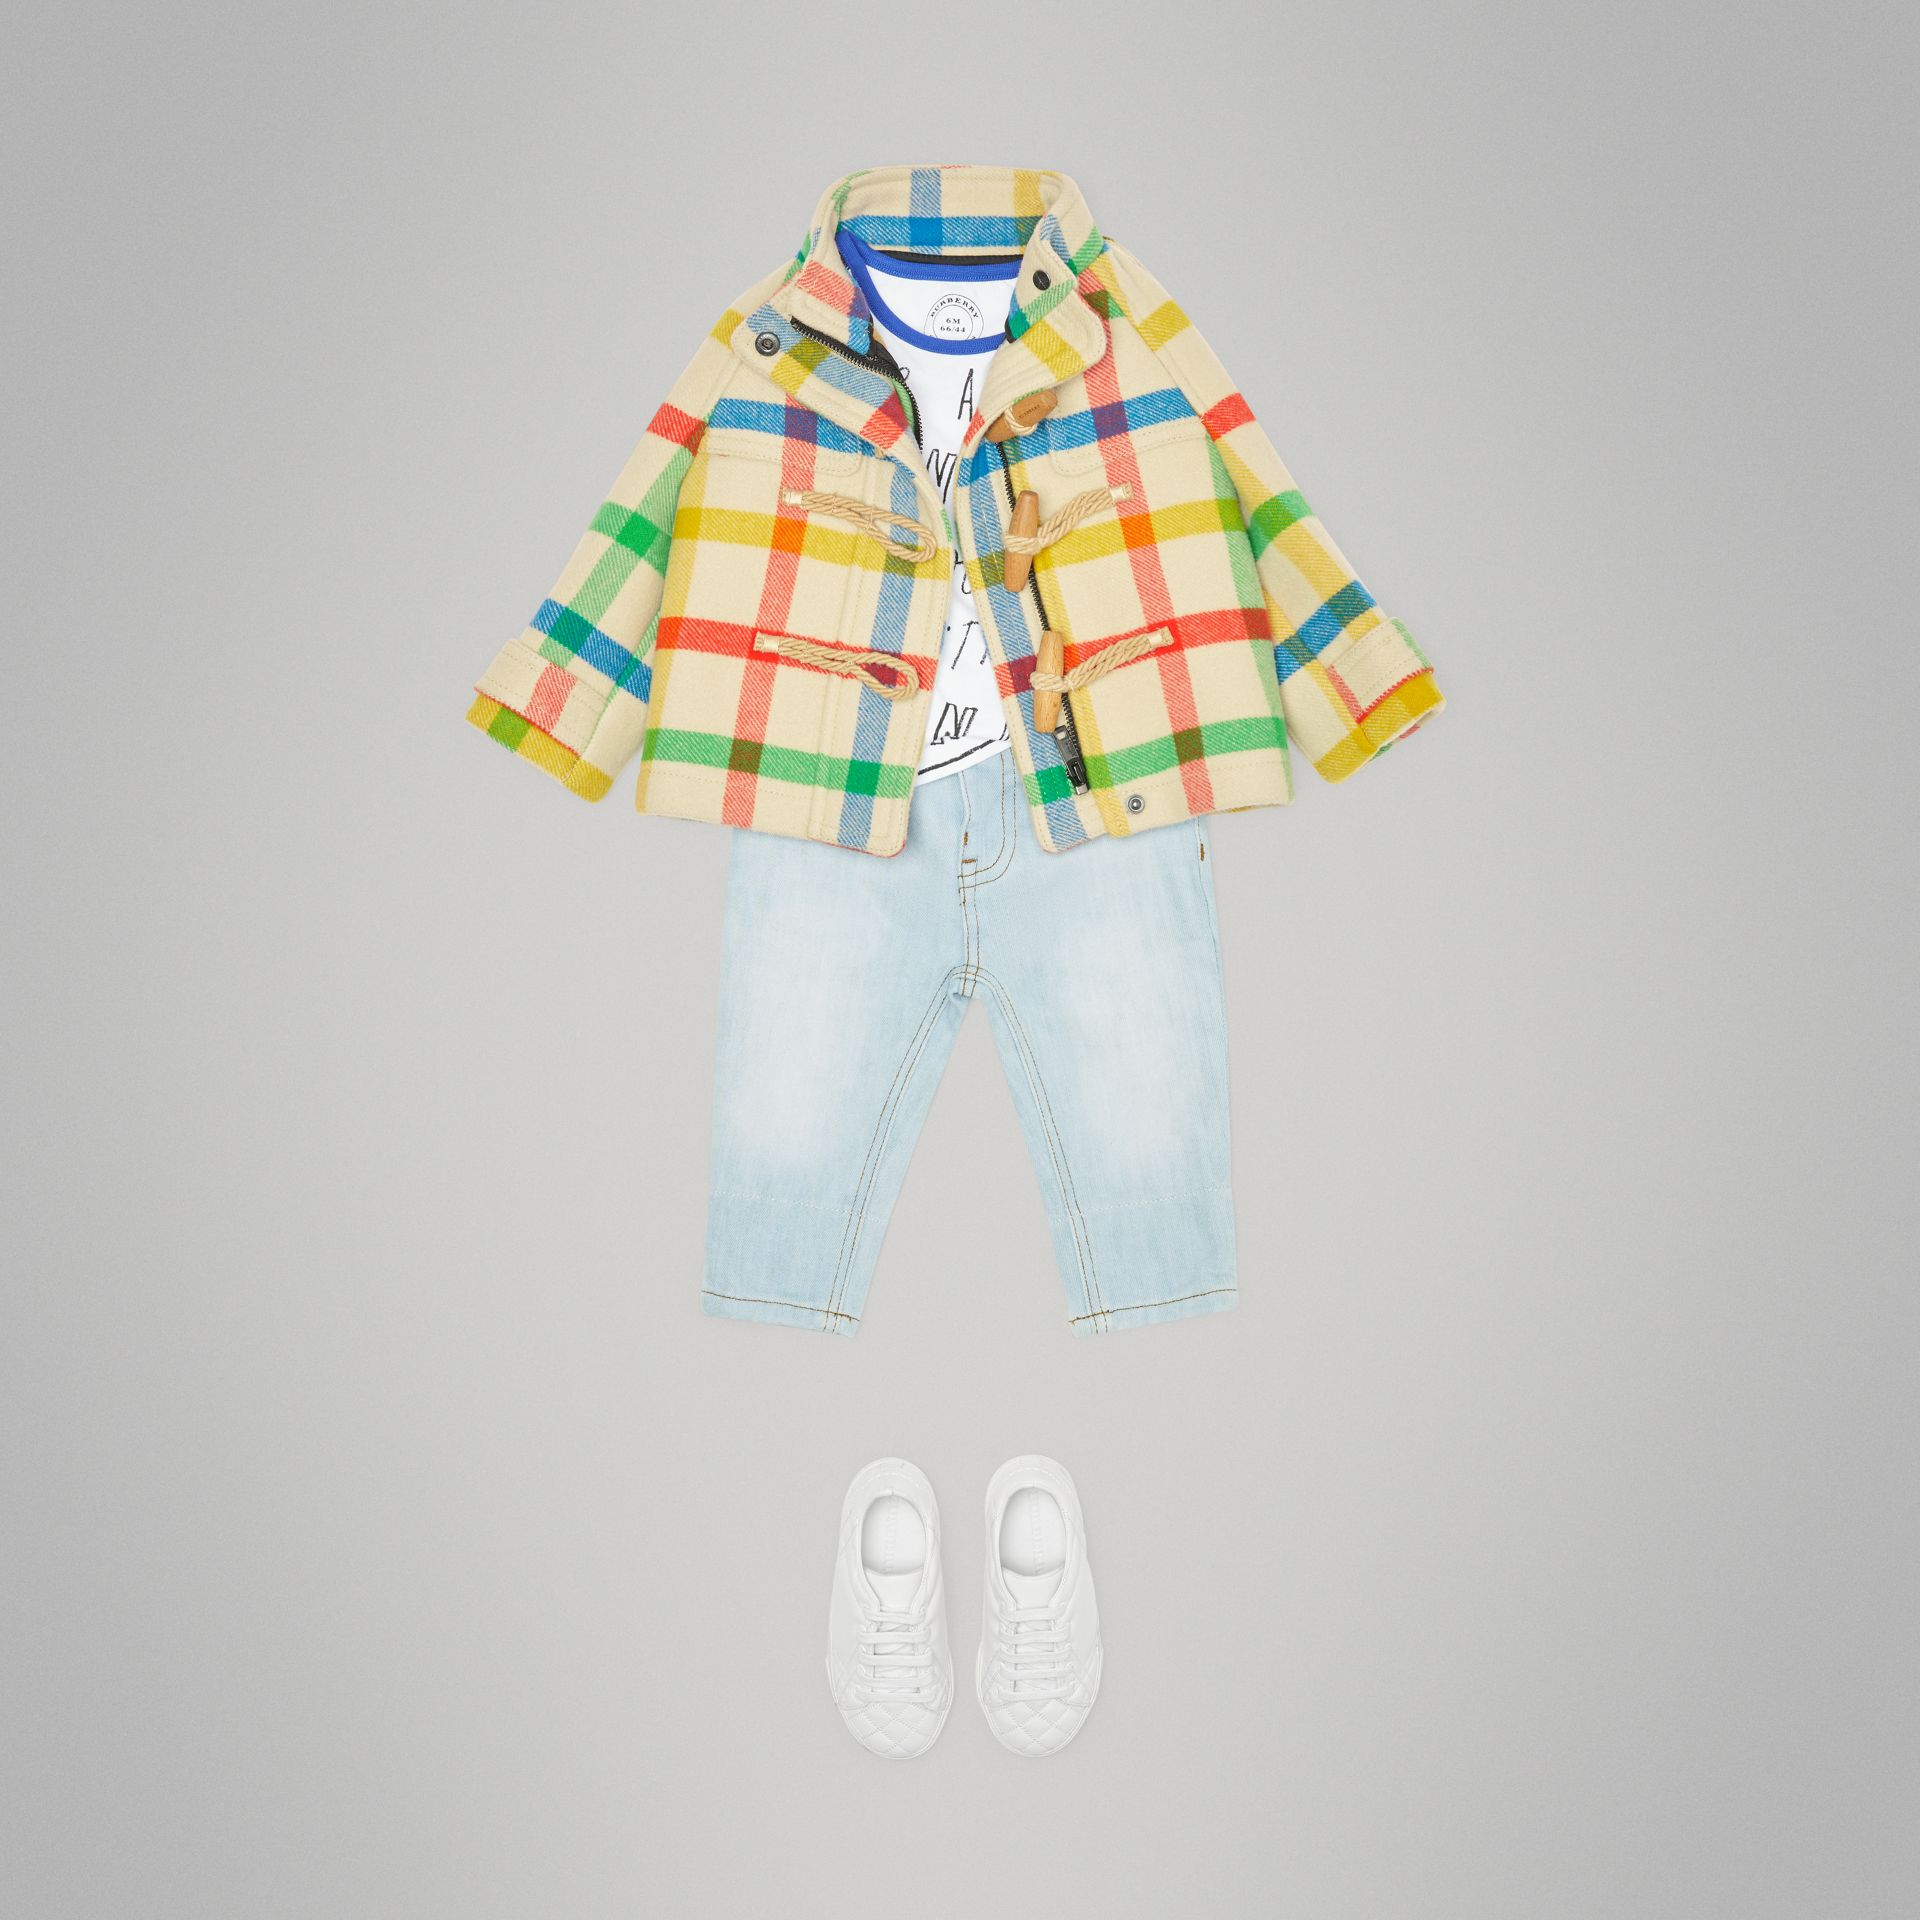 Duffle-coat en sergé de laine à motif check (Jaune Antique) - Enfant | Burberry - photo de la galerie 2